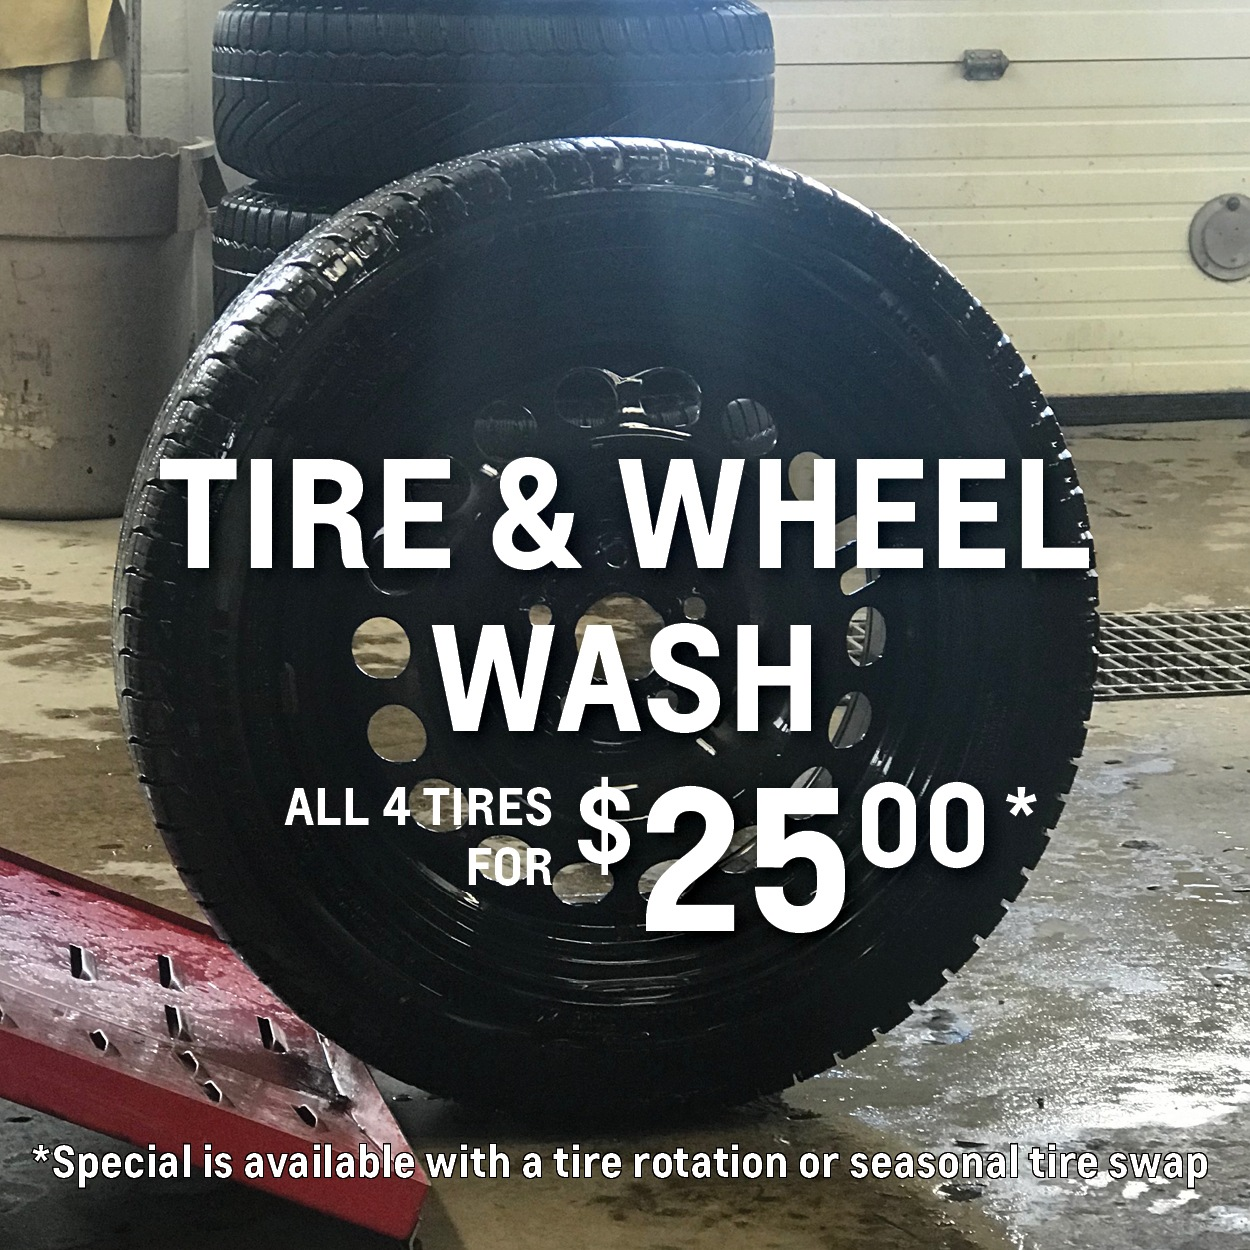 Tire & Wheel Wash Special